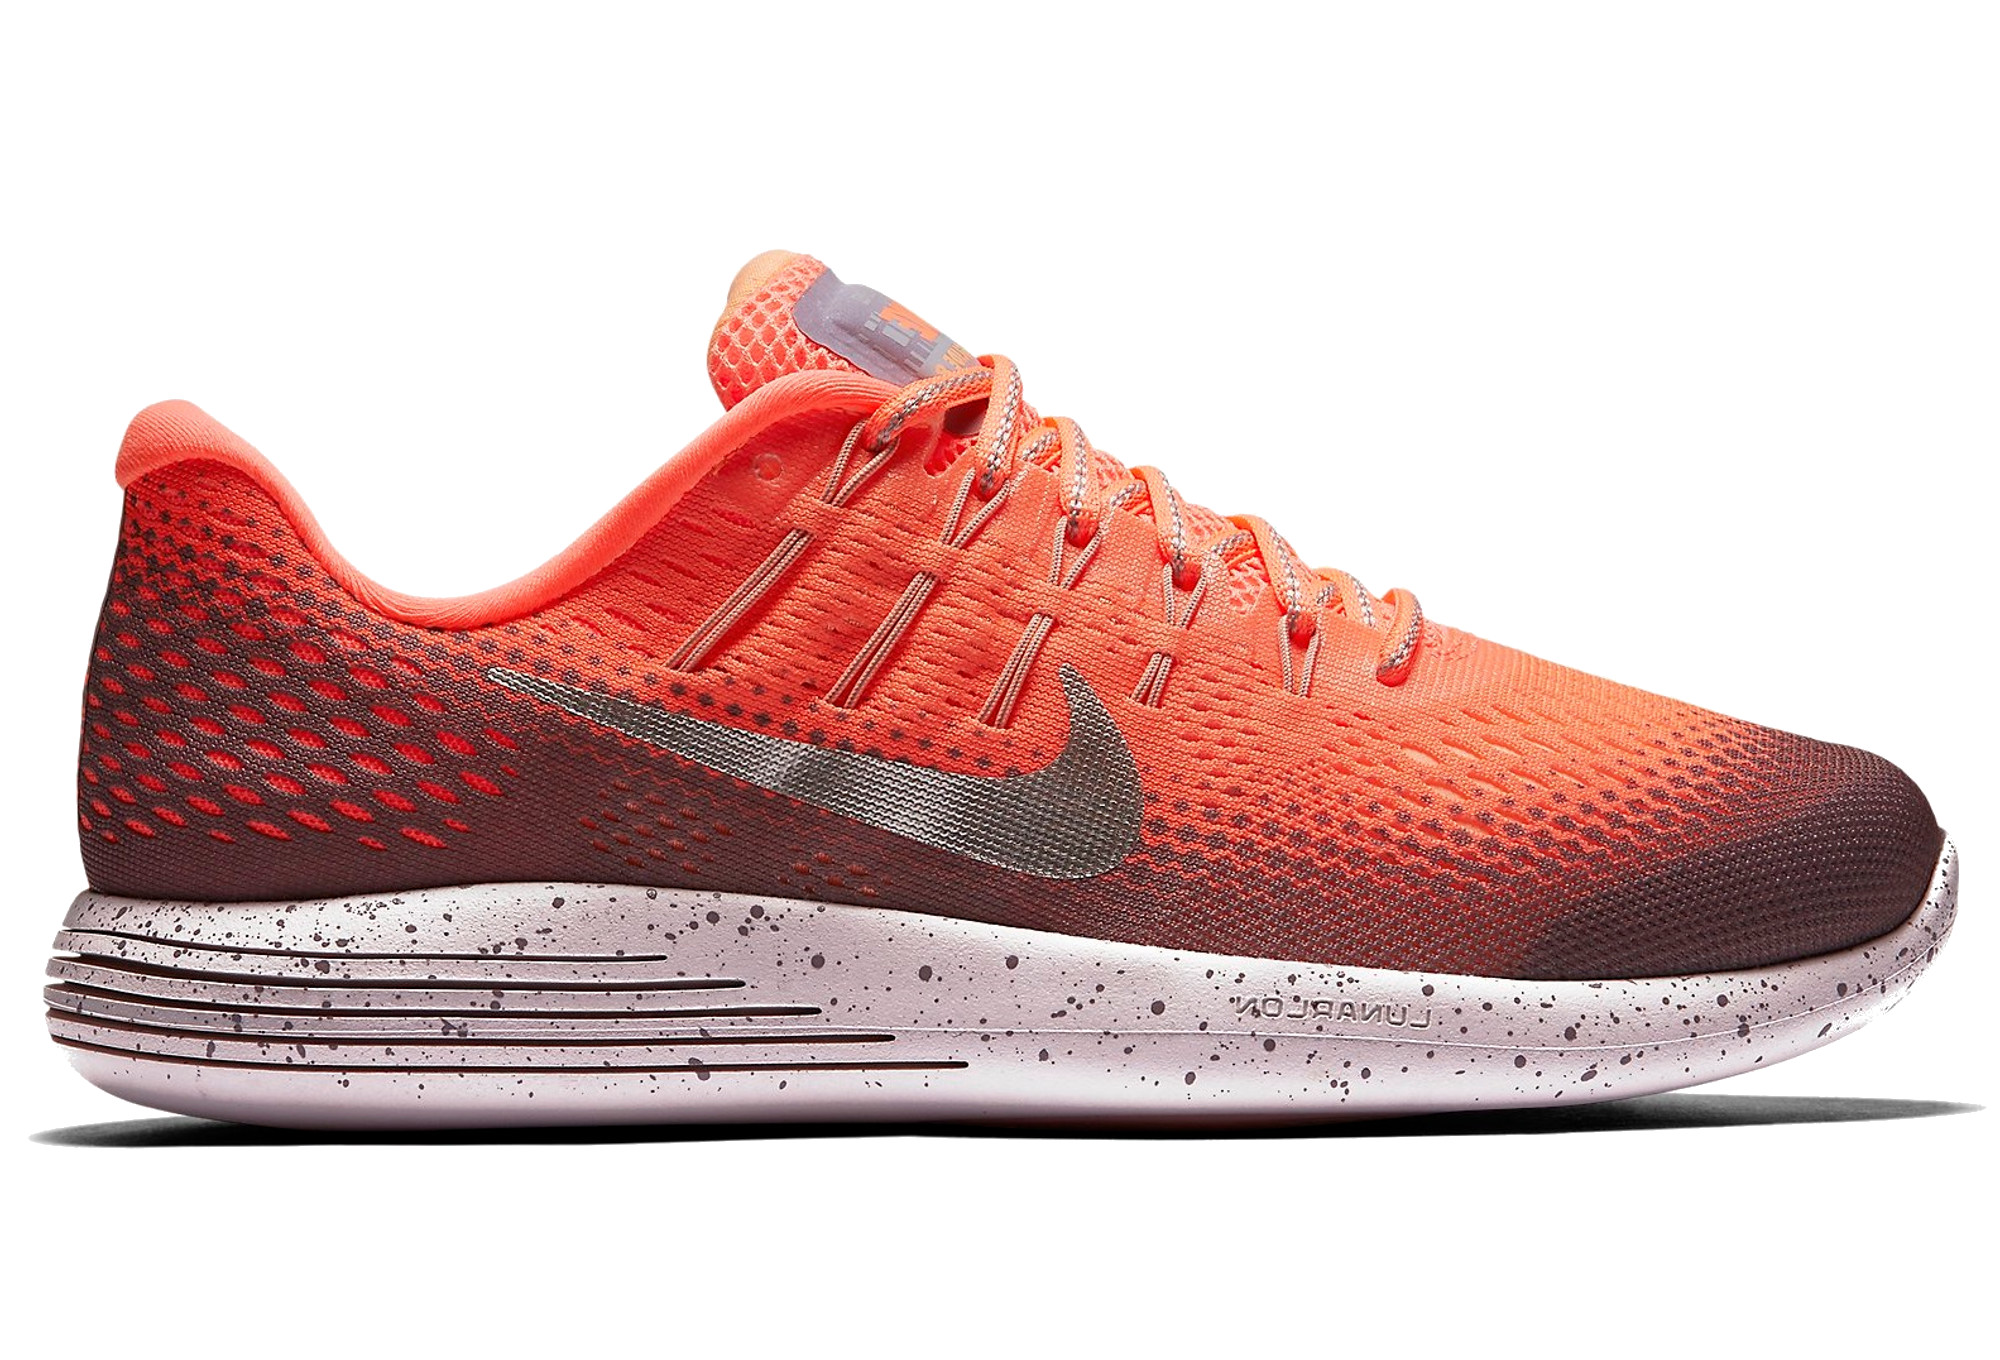 9e98beca1f5d NIKE LUNARGLIDE 8 SHIELD Shoes Orange Women